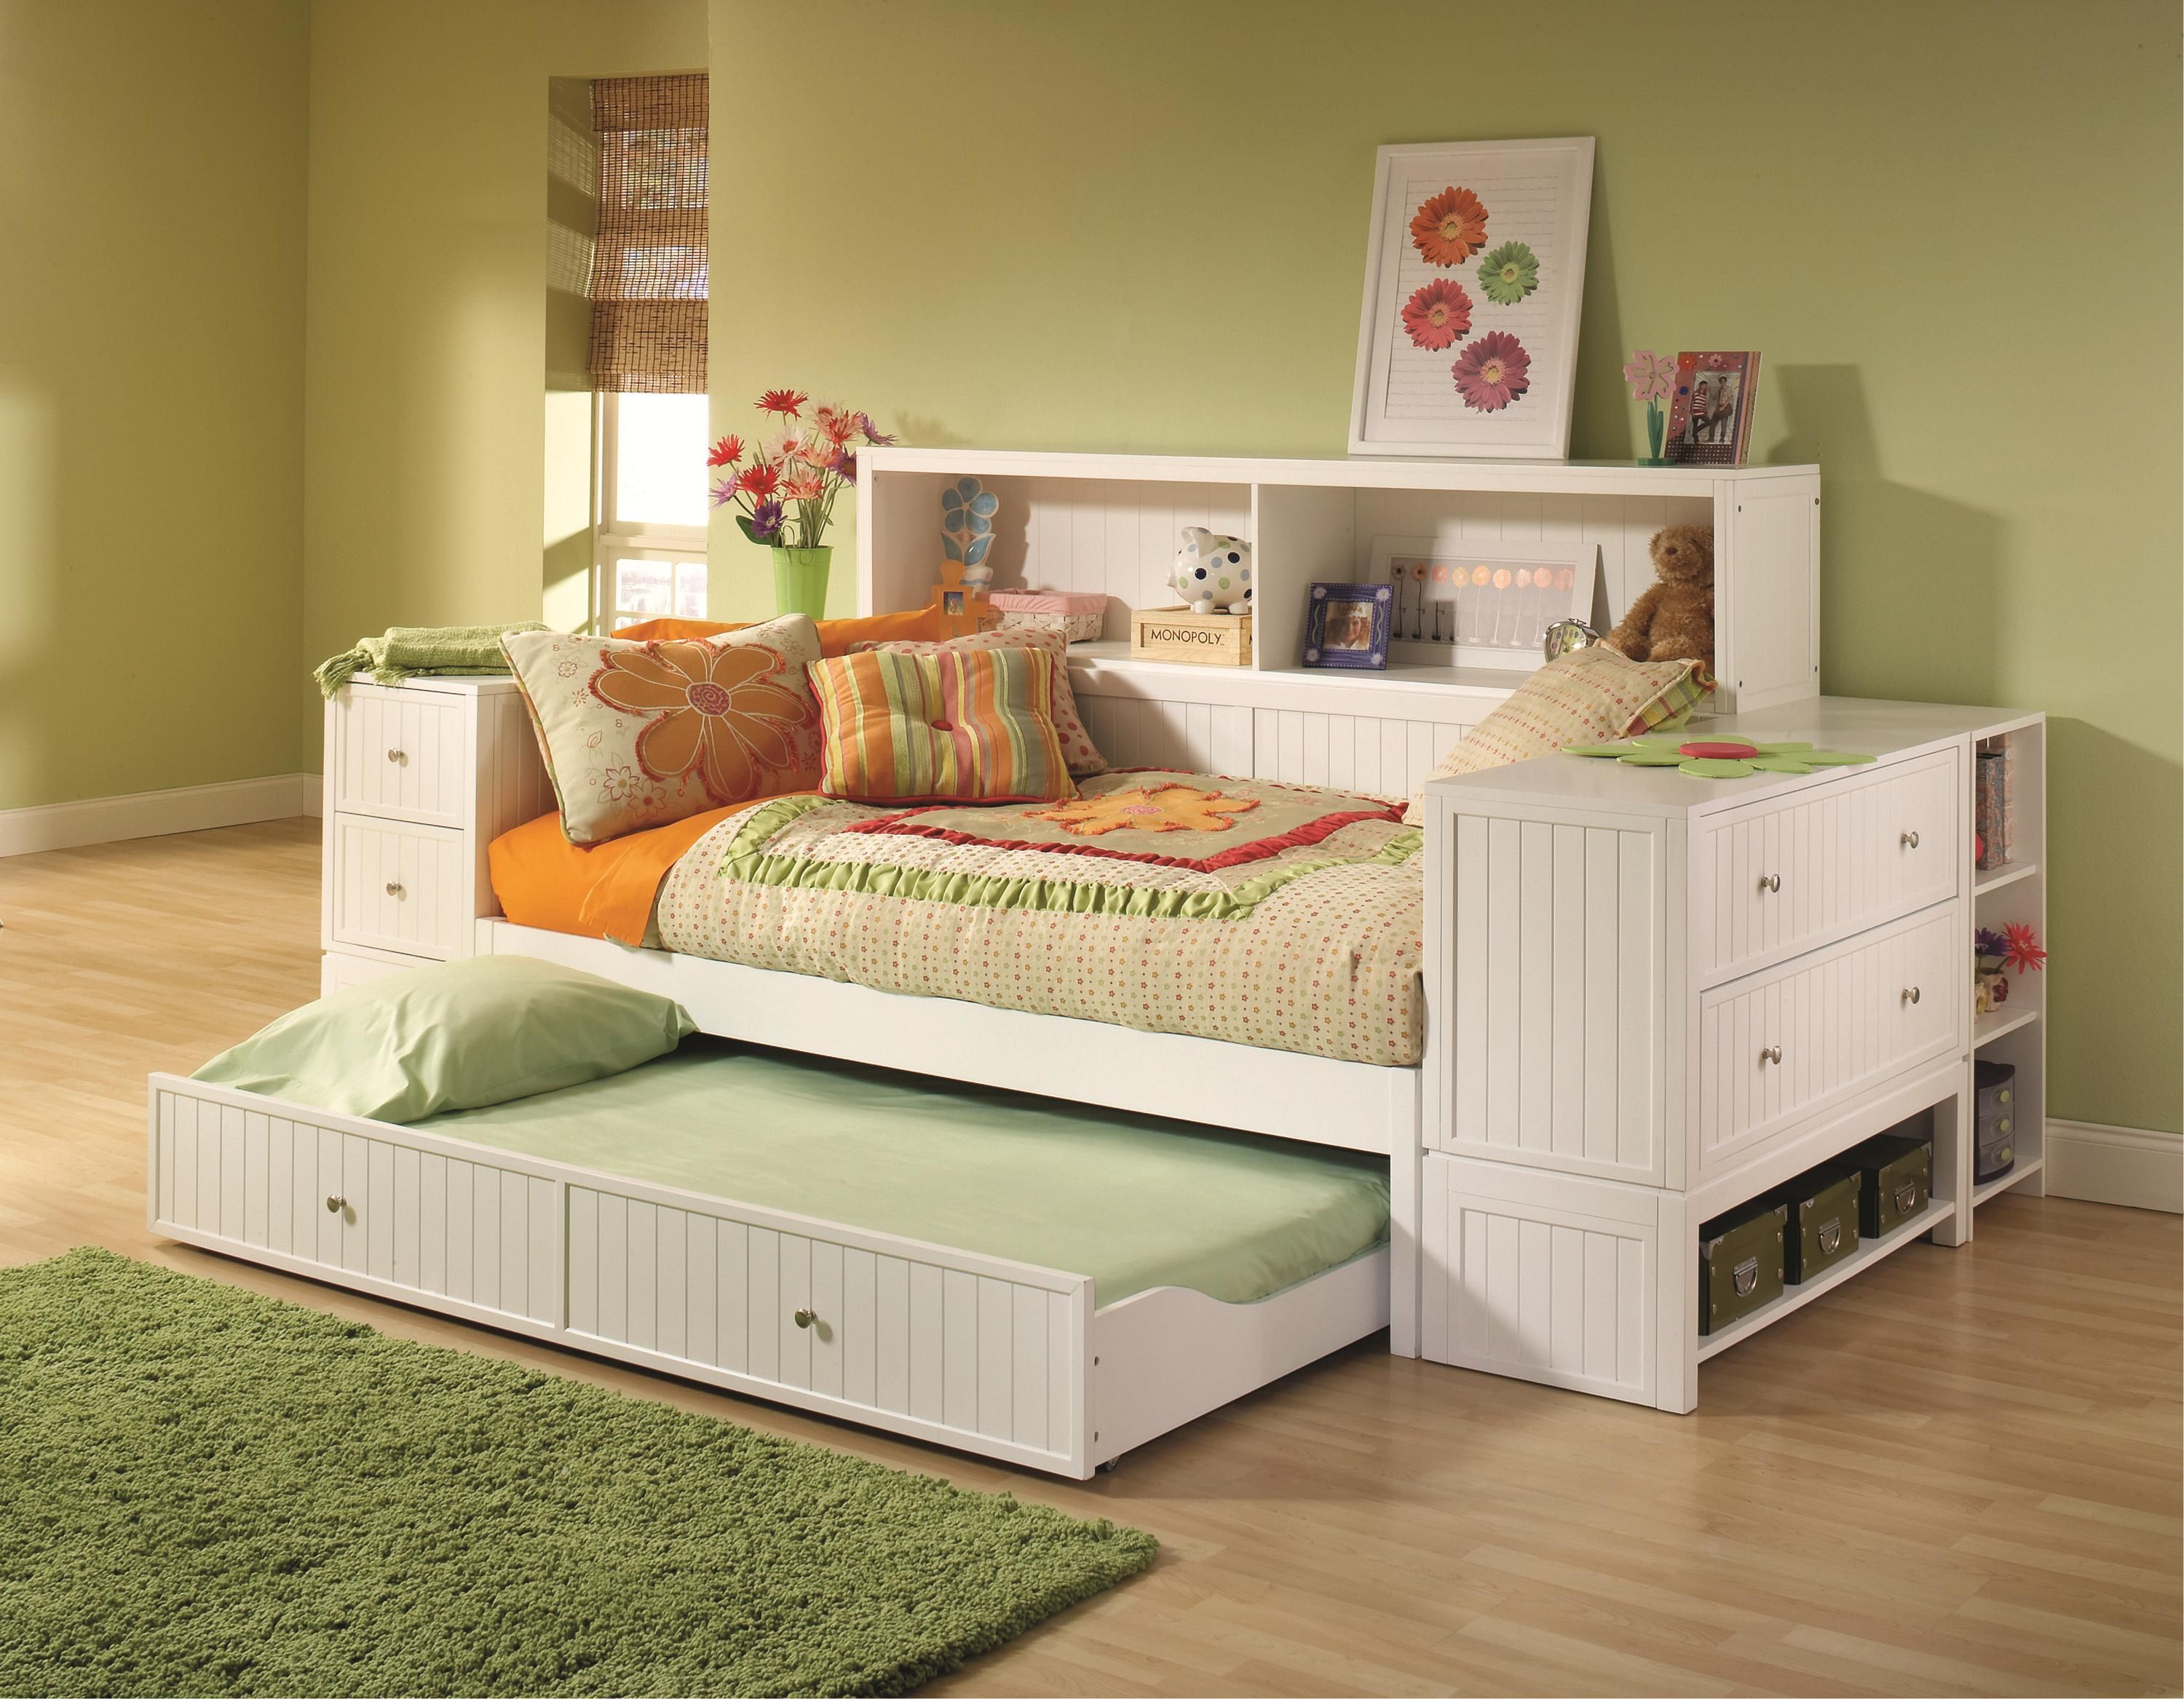 Representation of Daybeds with Storage | Bedroom Design ...